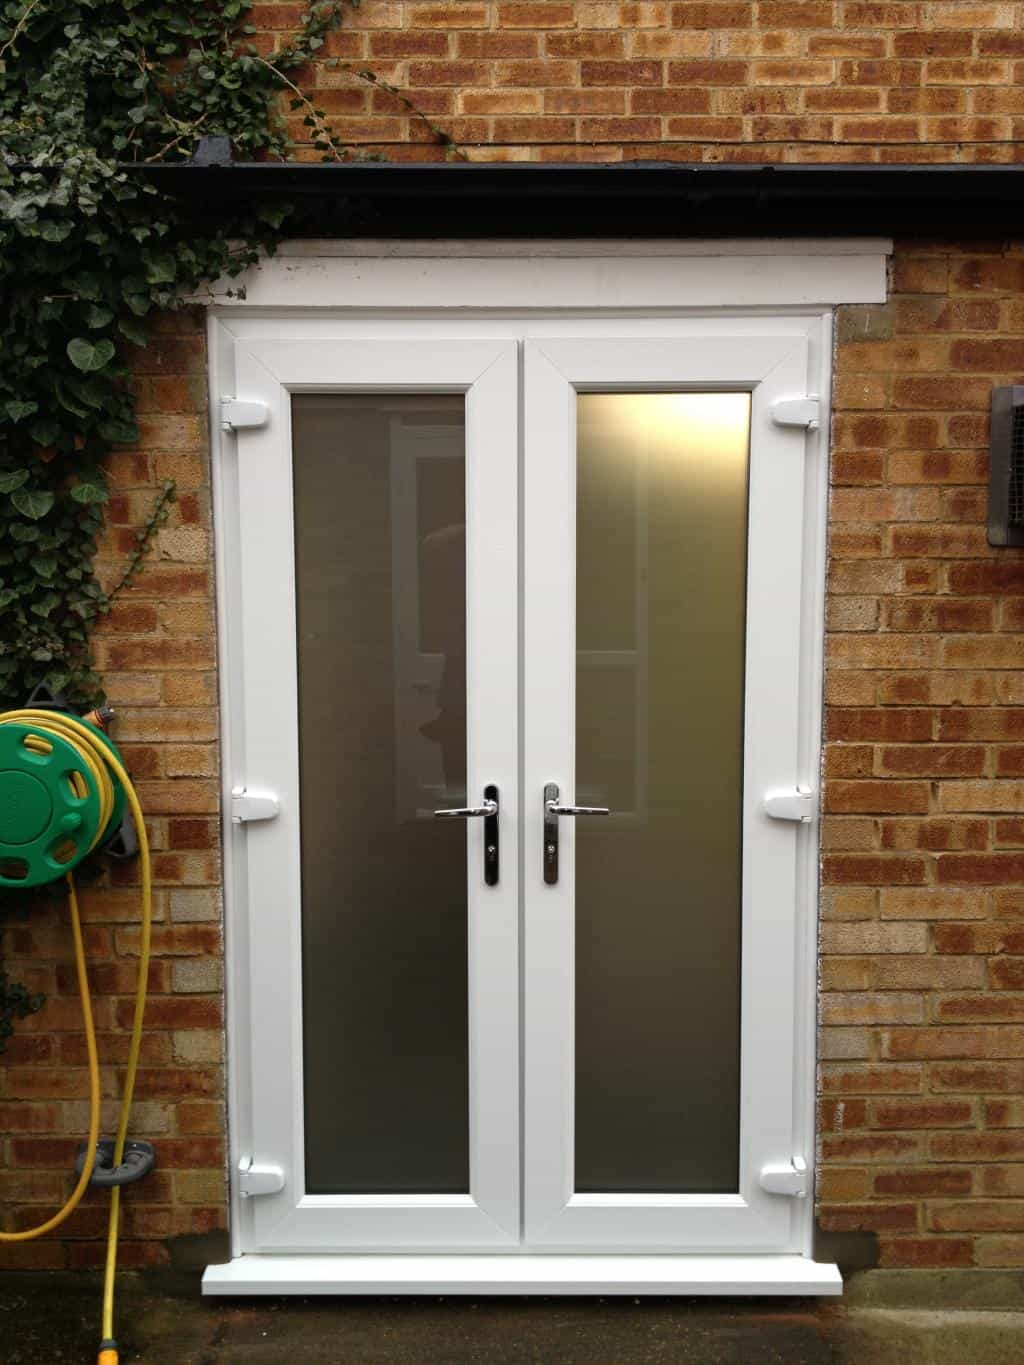 100 upvc patio doors cost trade double glazing lowestoft for Double glazed patio doors sale